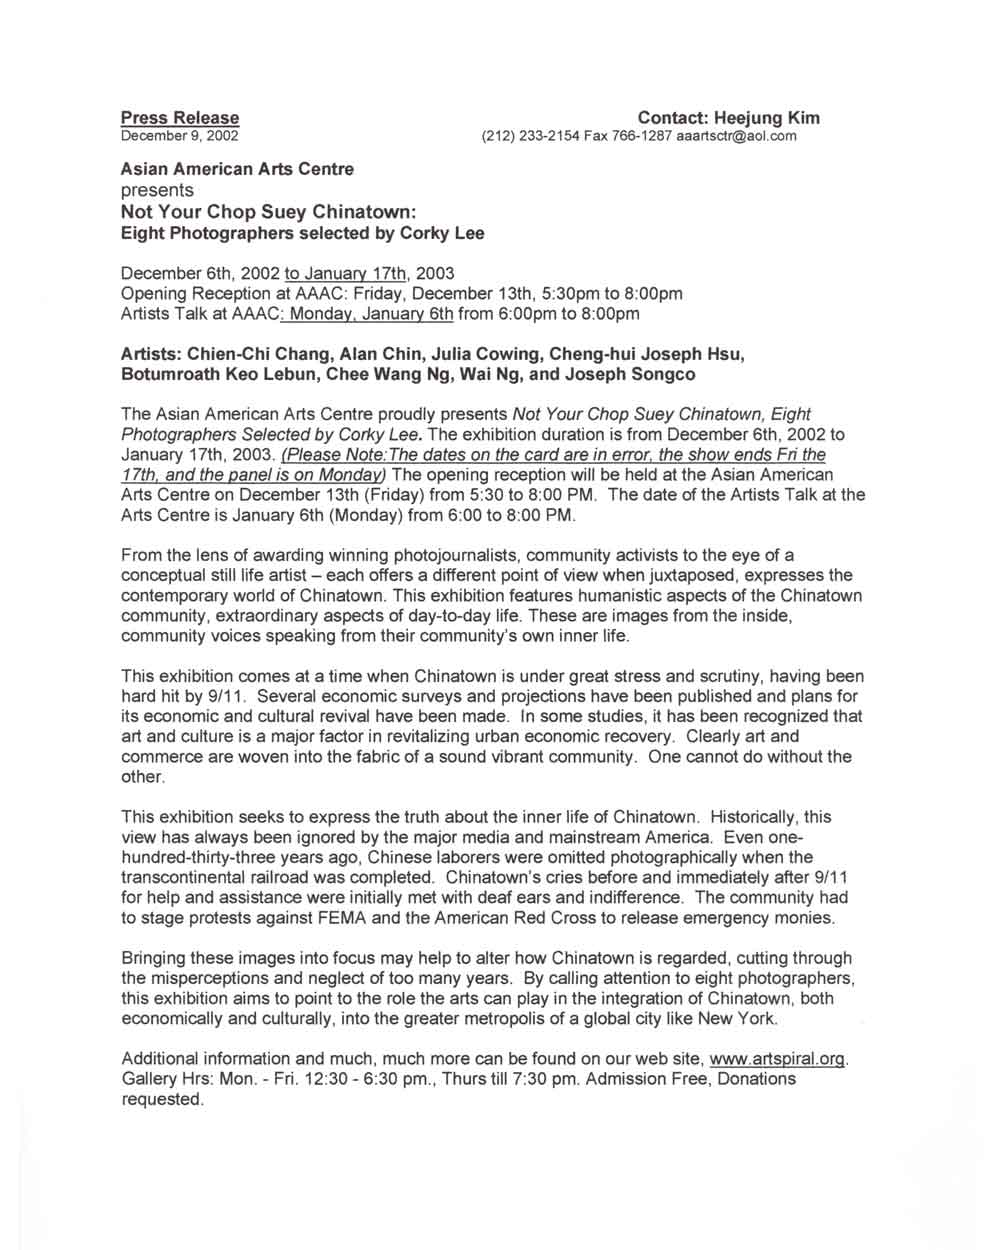 Not Your Chop Suey Chinatown, press release, pg 1